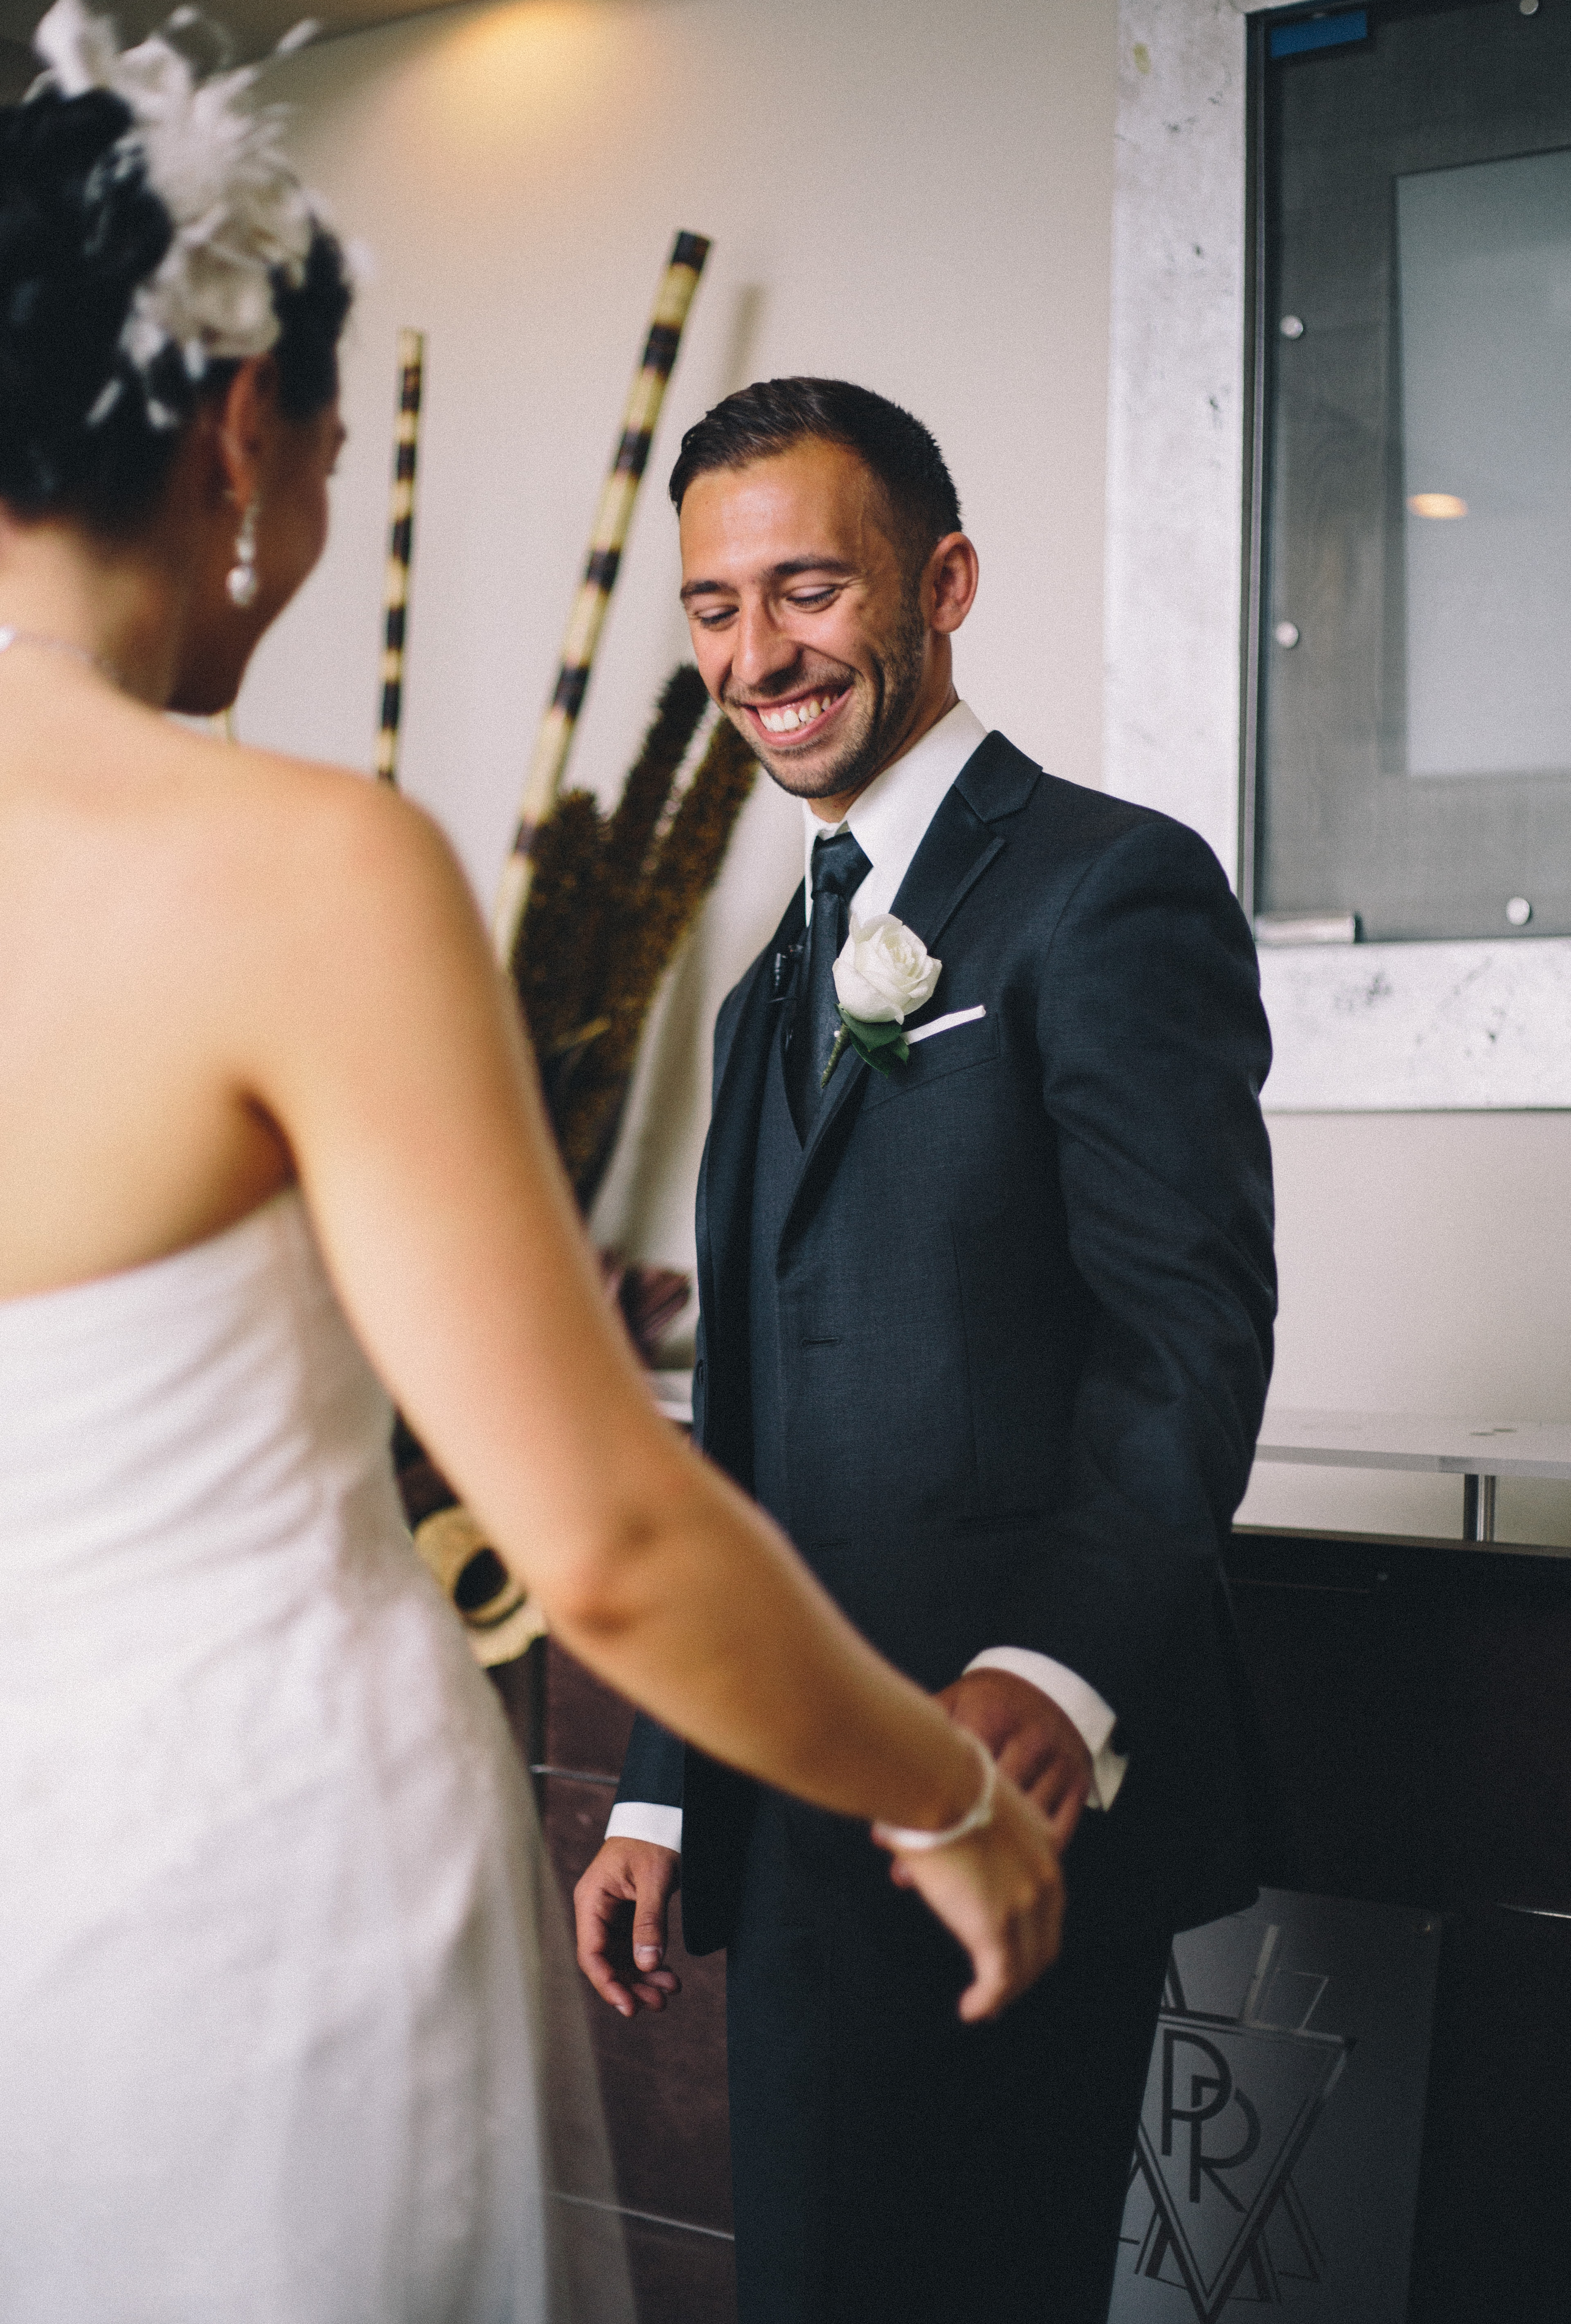 Jewish groom reacts with large grin and holds the hand of his bride during their First Look at the Palais Royale in Toronto